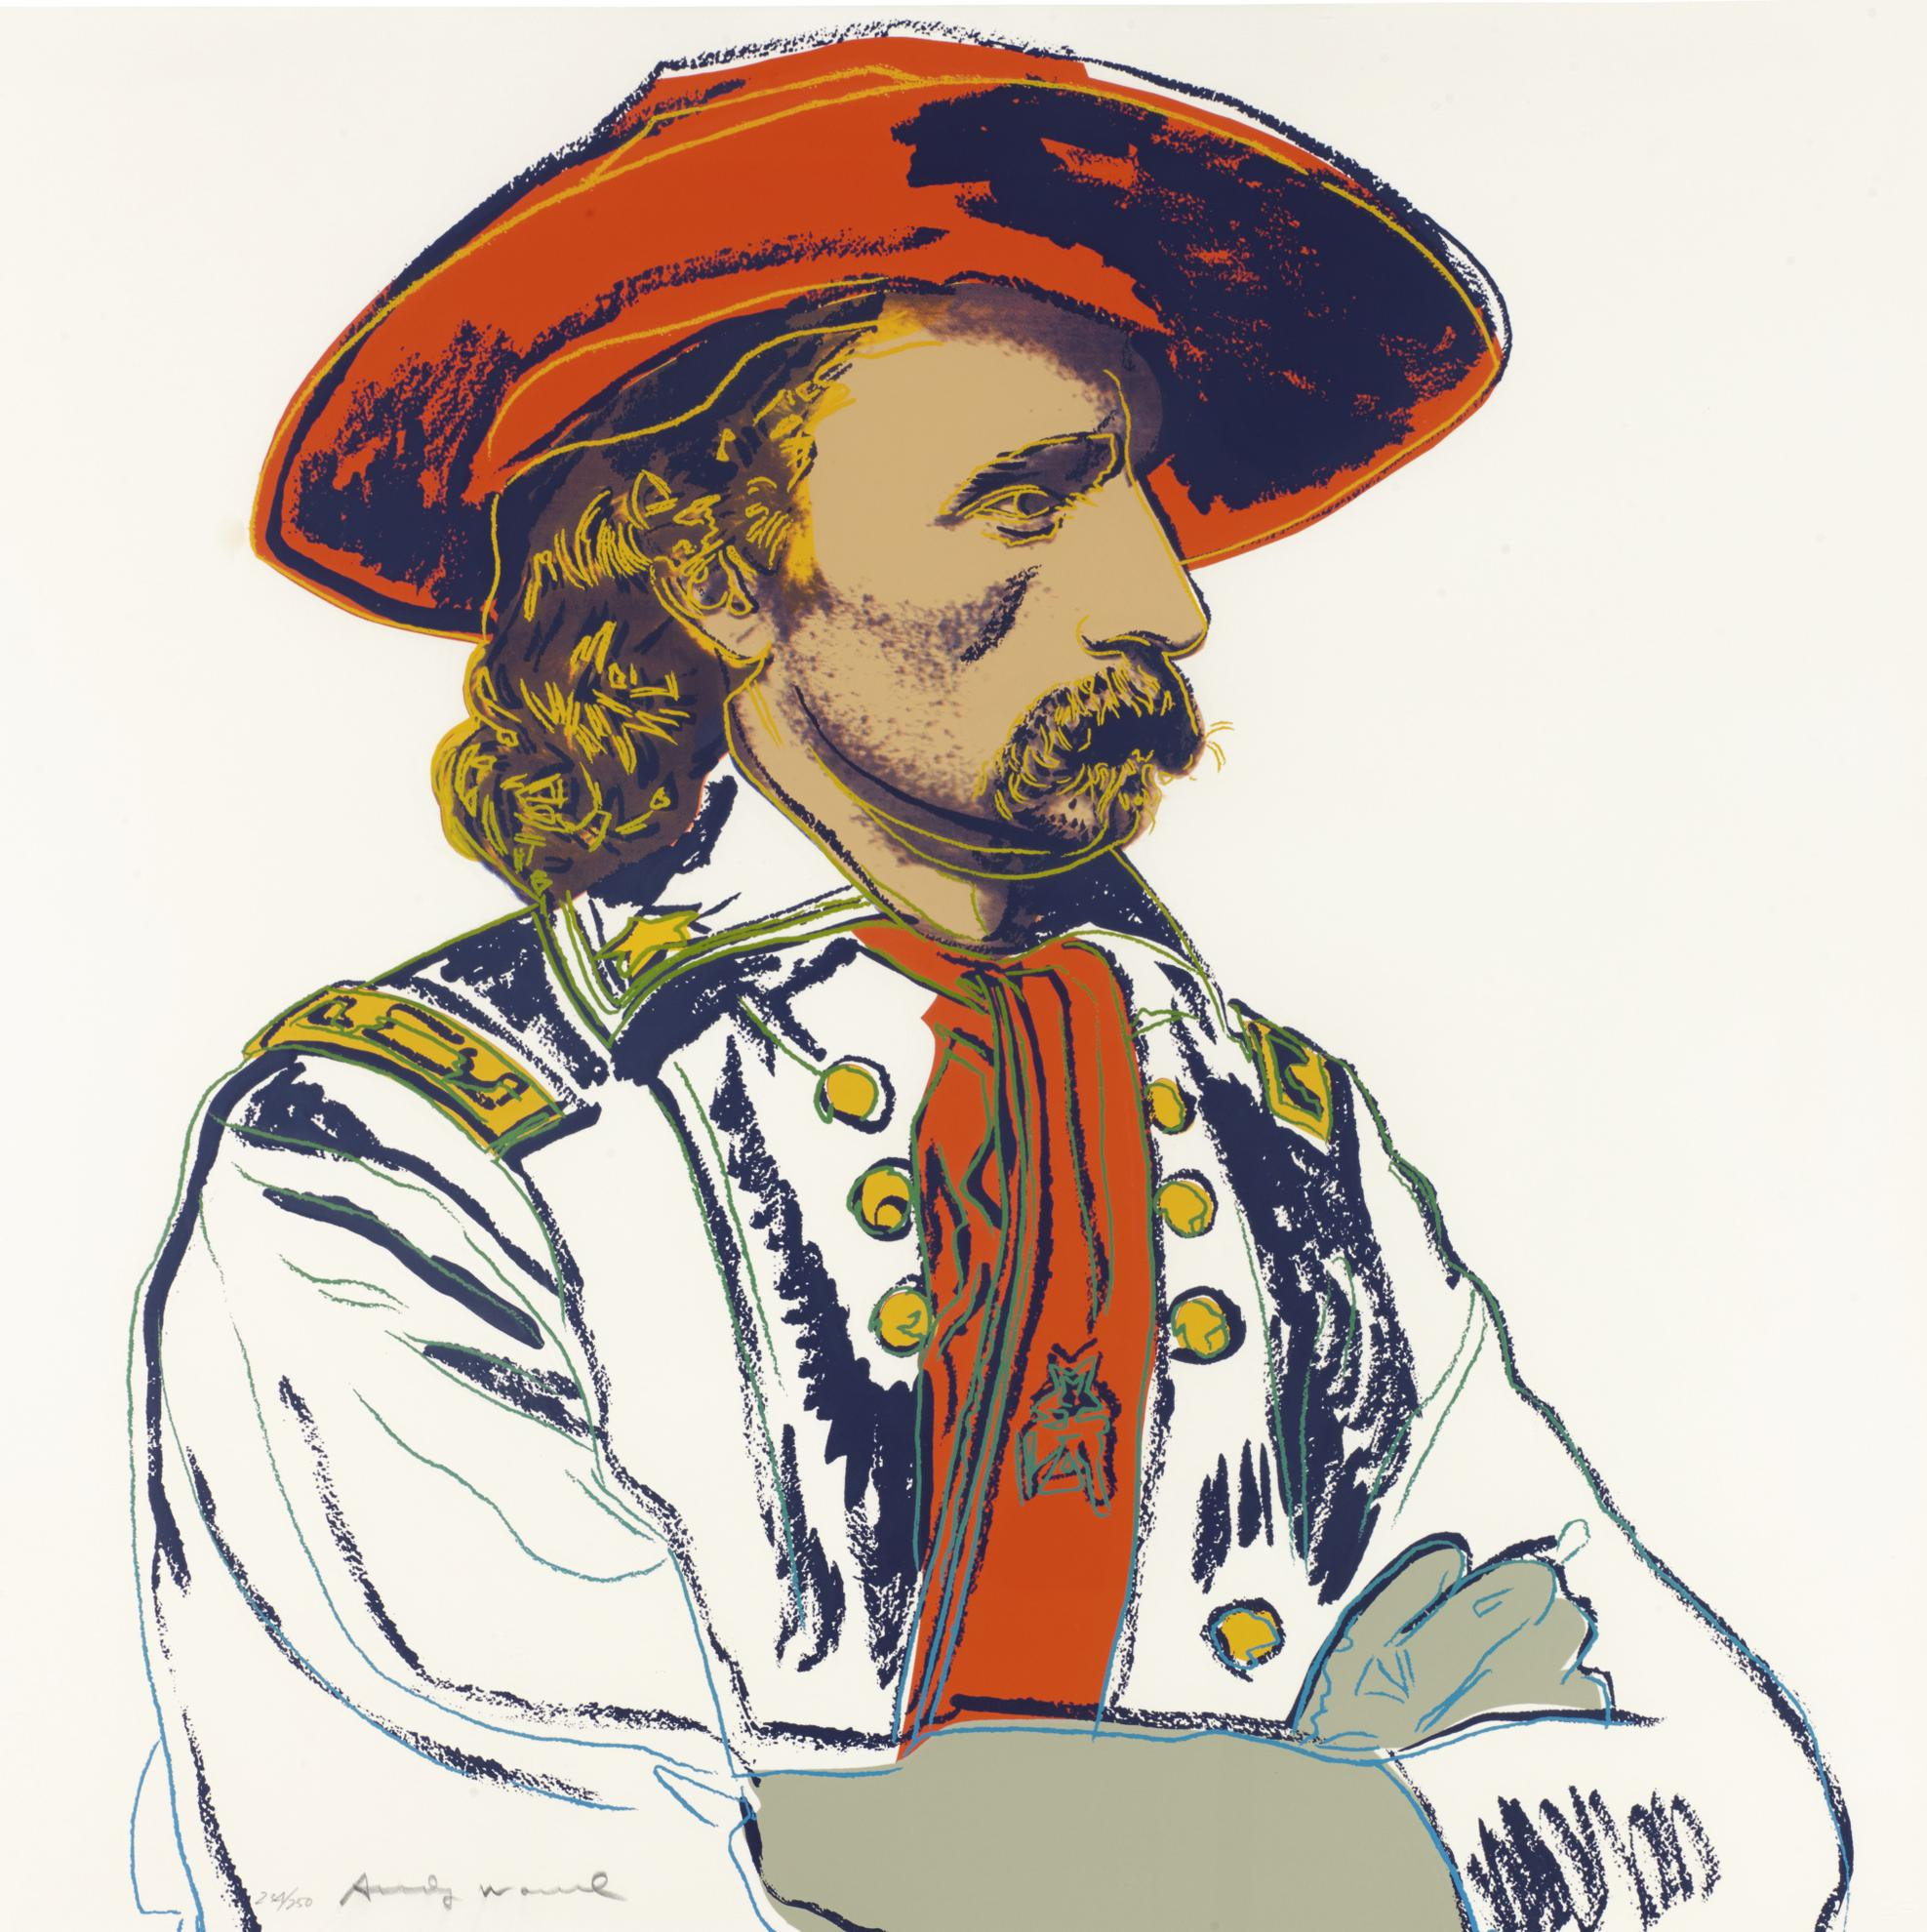 Andy Warhol-General Custer (F. & S. II.379)-1986